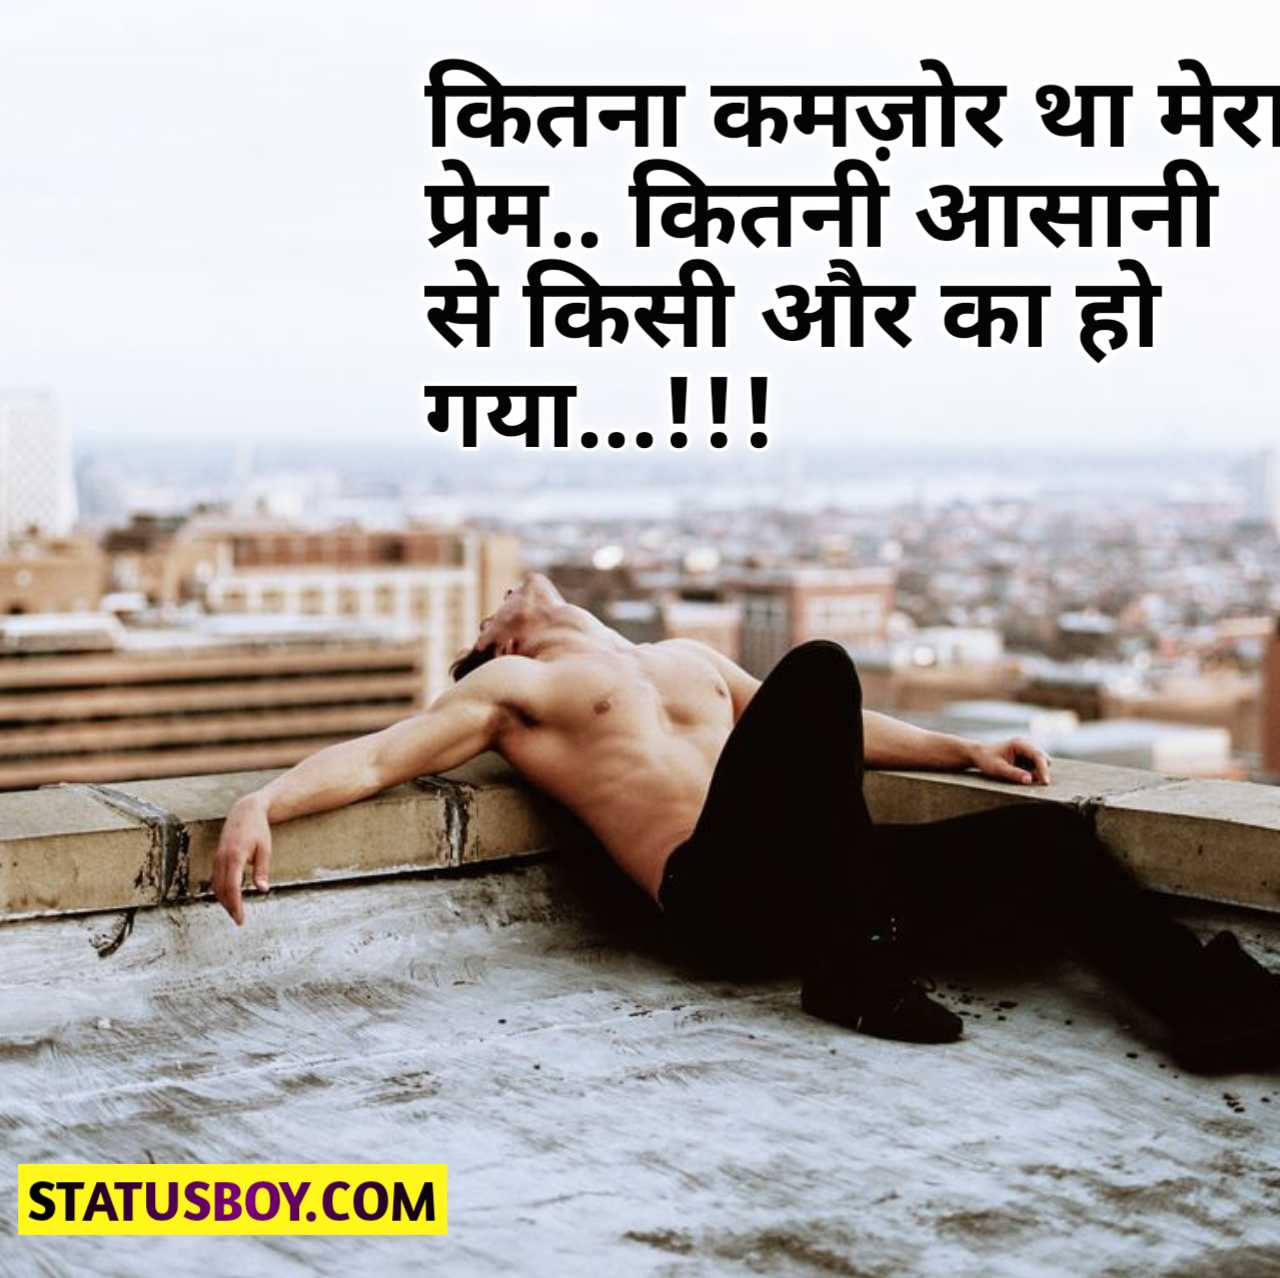 Hindi me Dard Bhare Status